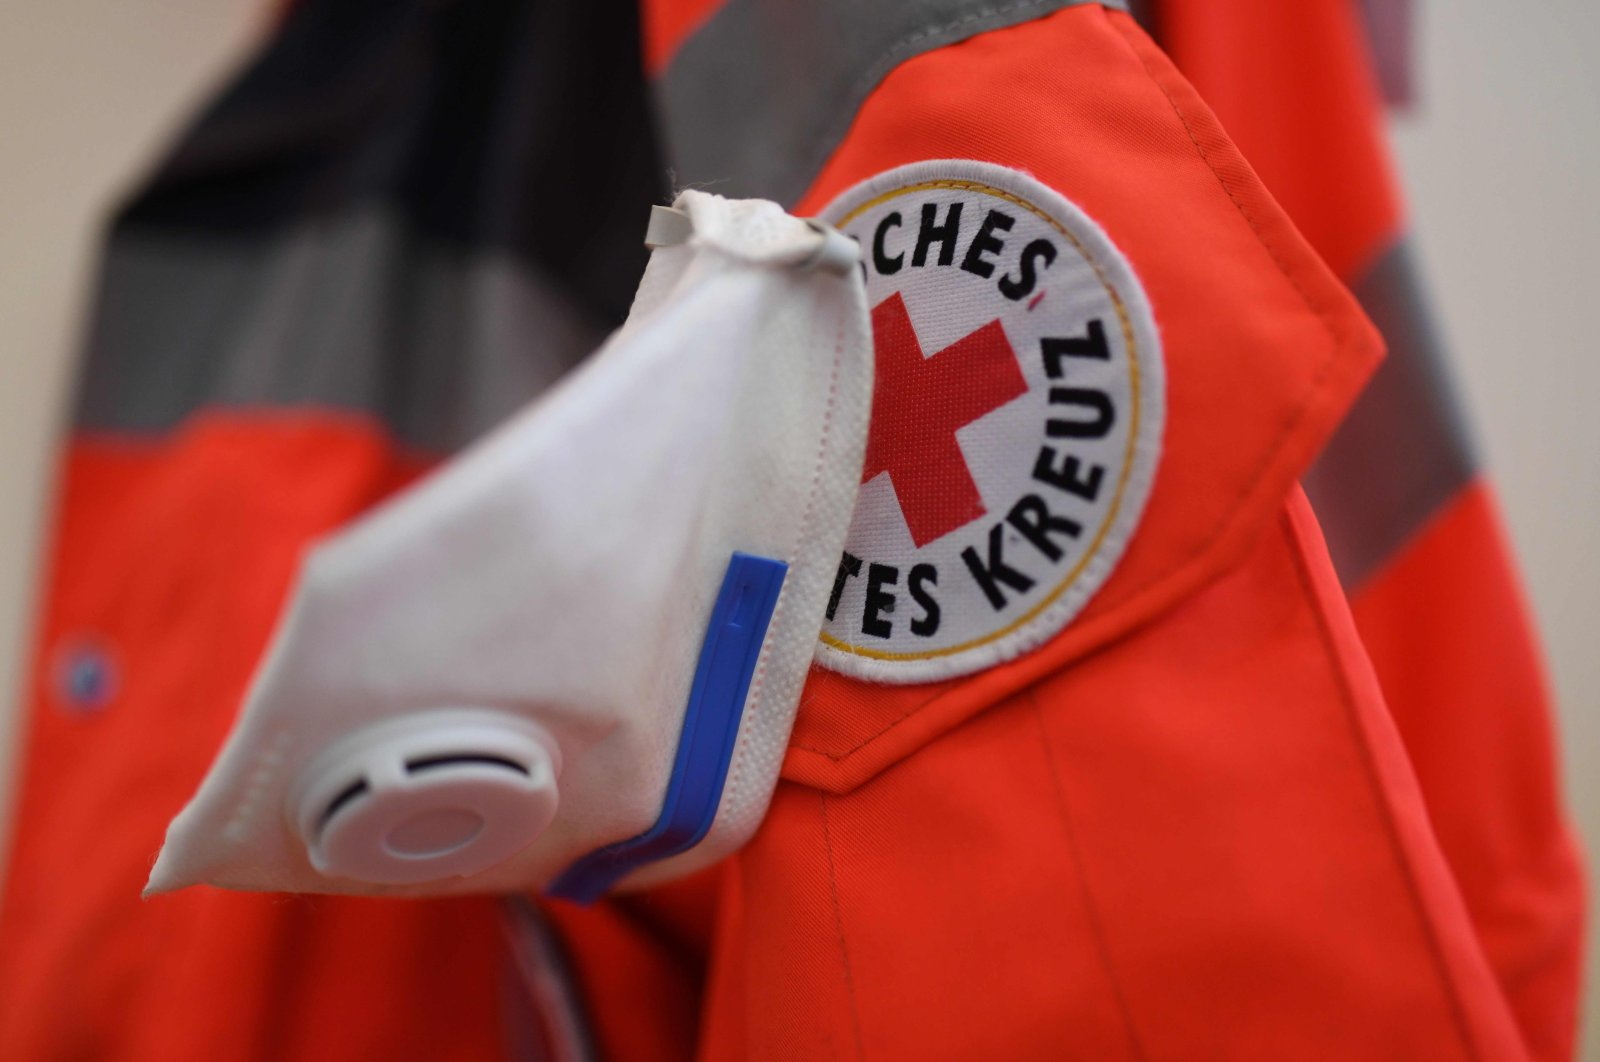 An FFP3 protective mask hangs on a jacket of the German Red Cross at the former St. Marien hospital in Laer near Steinfurt, Saturday, March 21, 2020. (AFP Photo)